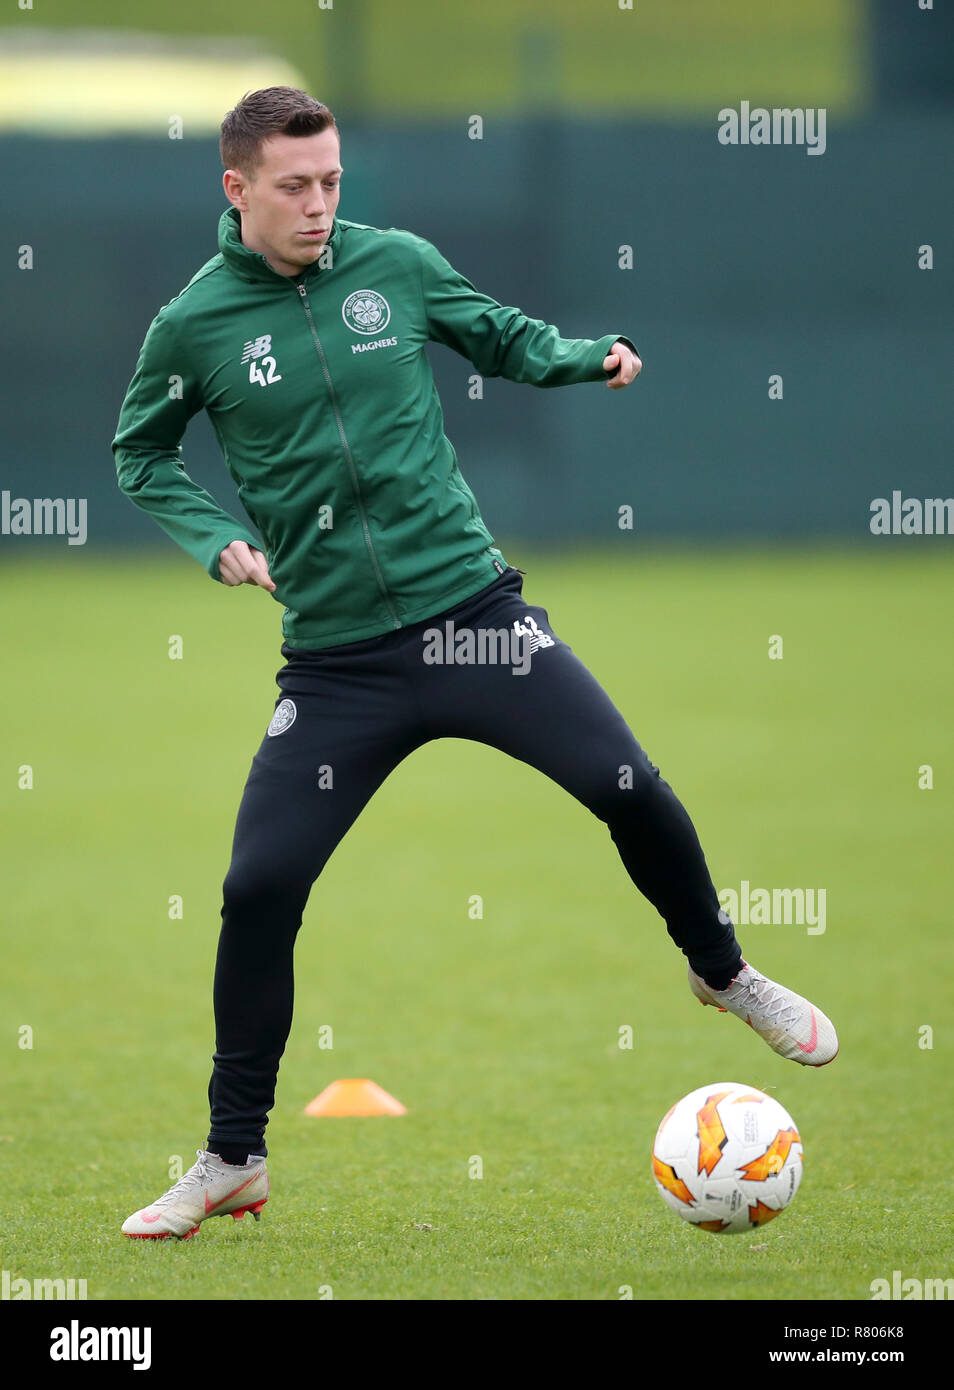 Celtic's Callum McGregor during the training session at Lennoxtown, Glasgow. - Stock Image